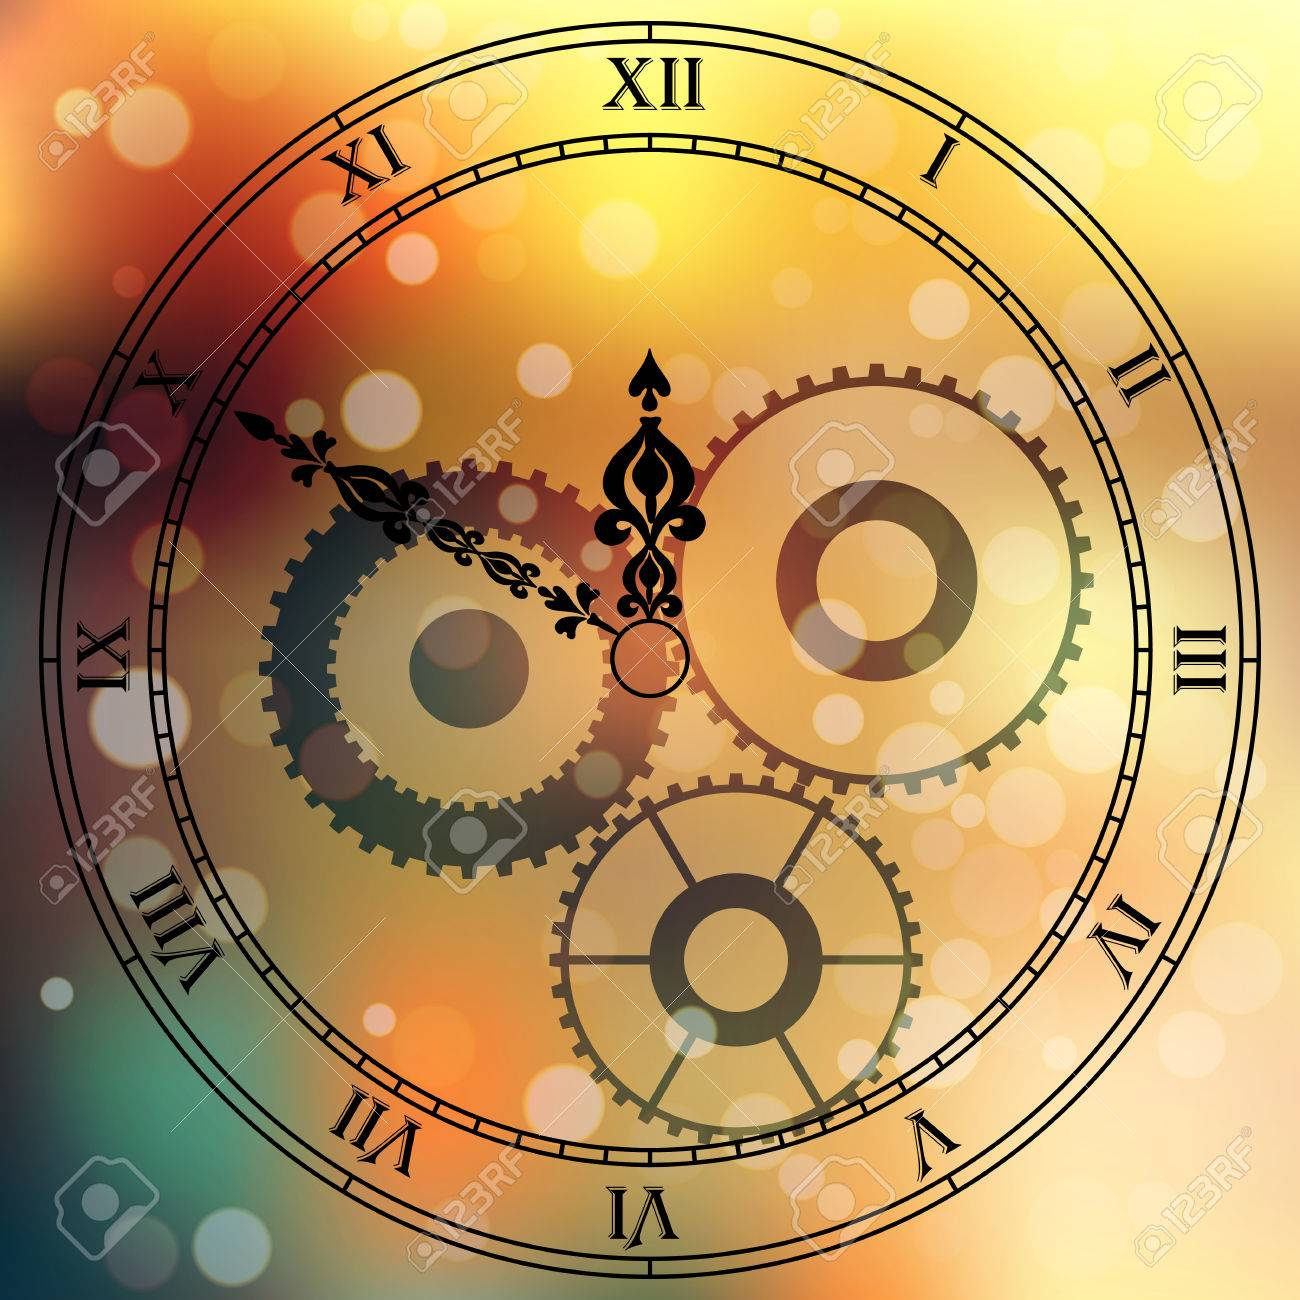 very high quality original trendy vector antique clock face with